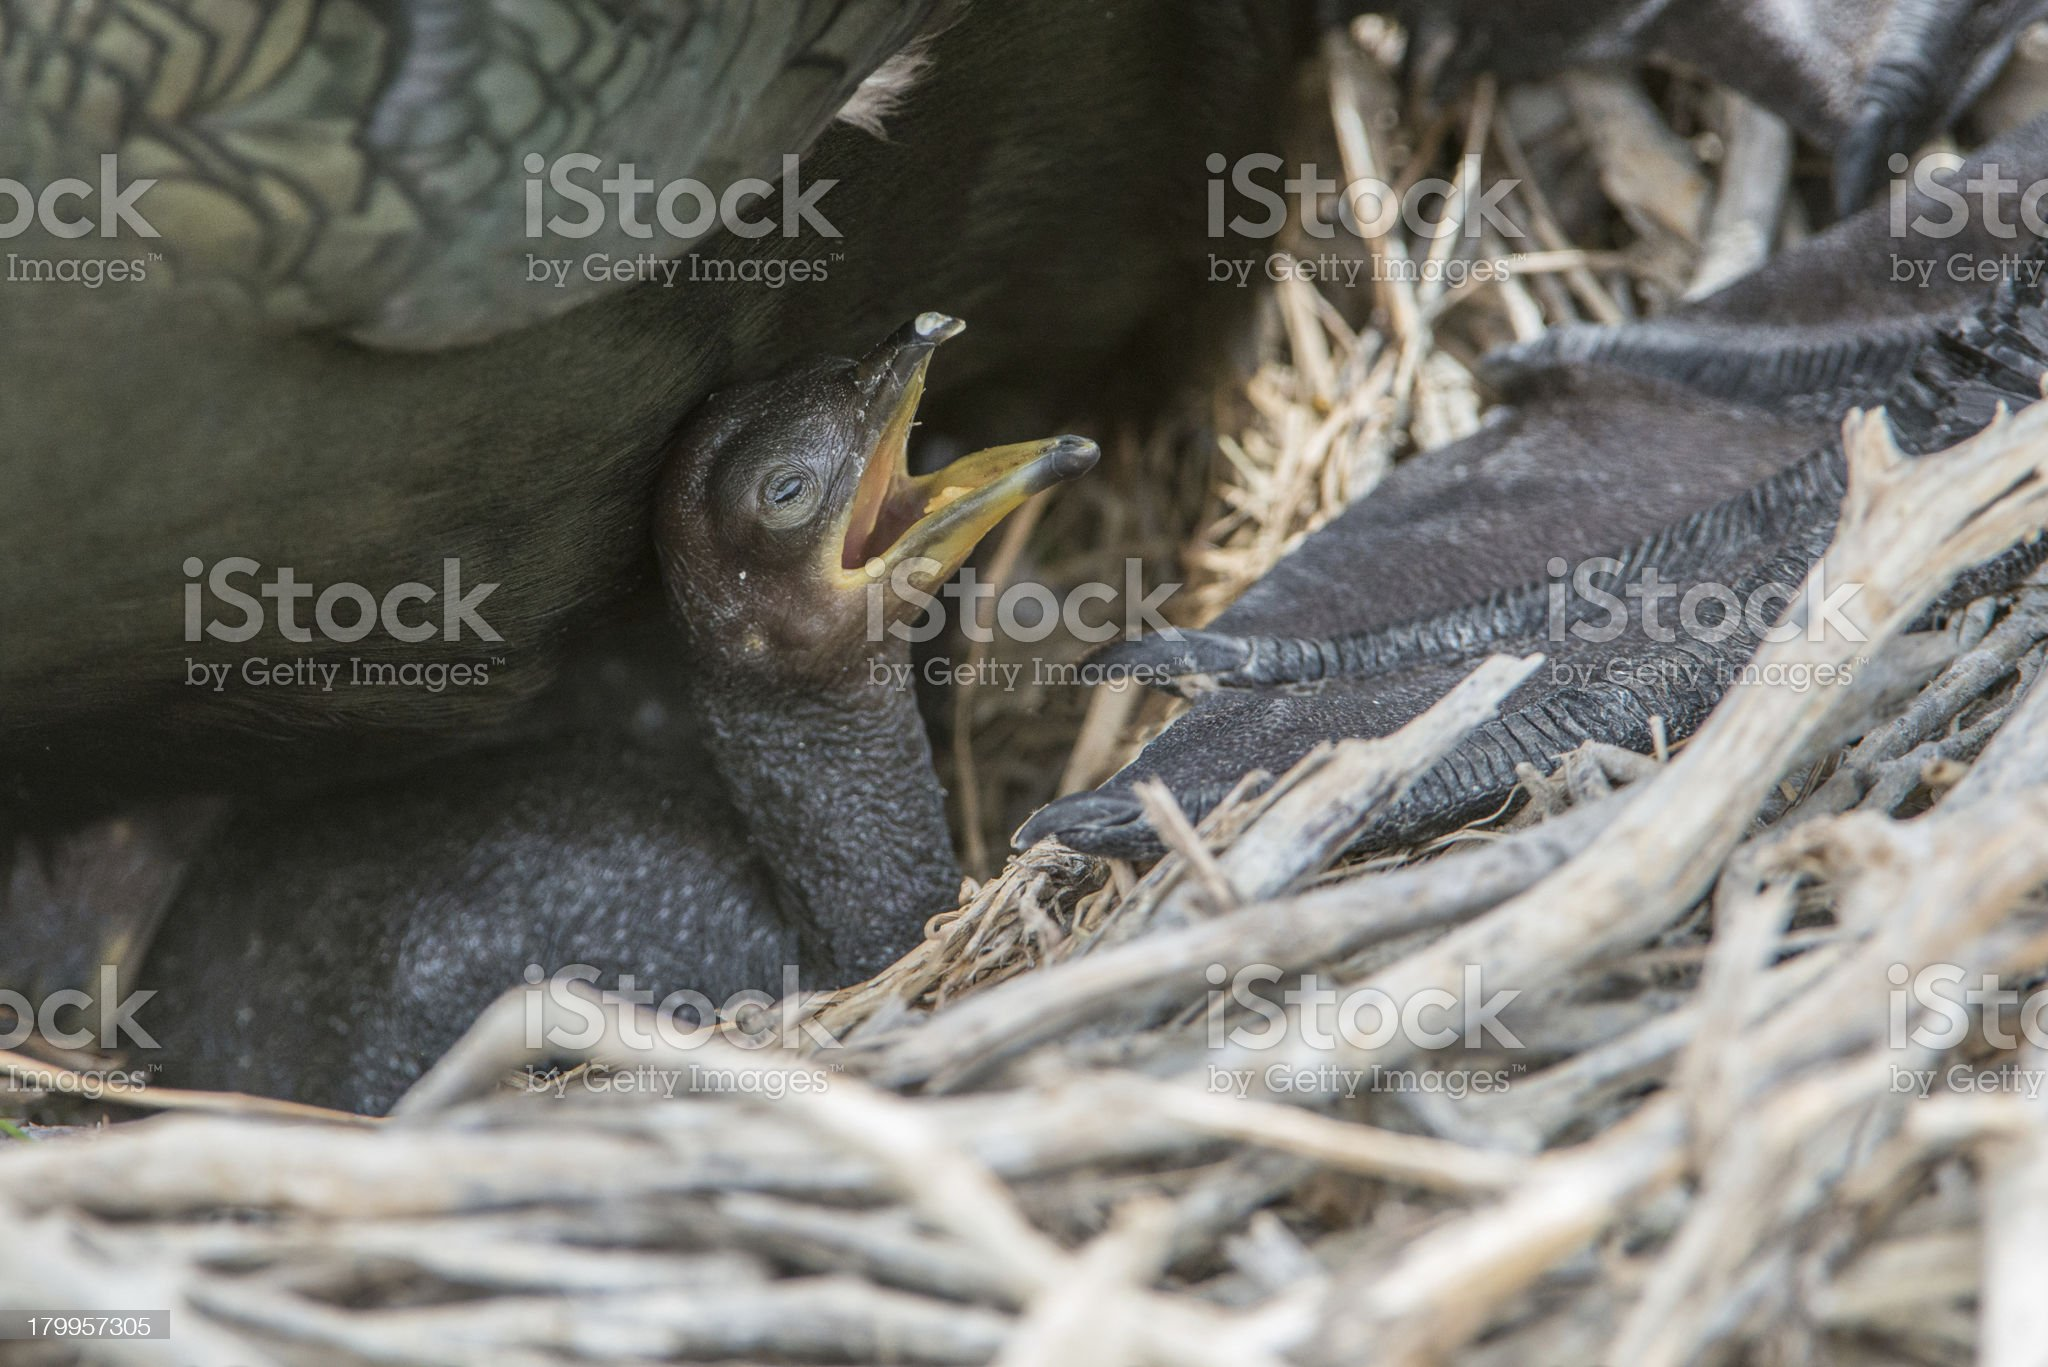 Shag family and newly born chick (Farne Islands, UK) royalty-free stock photo